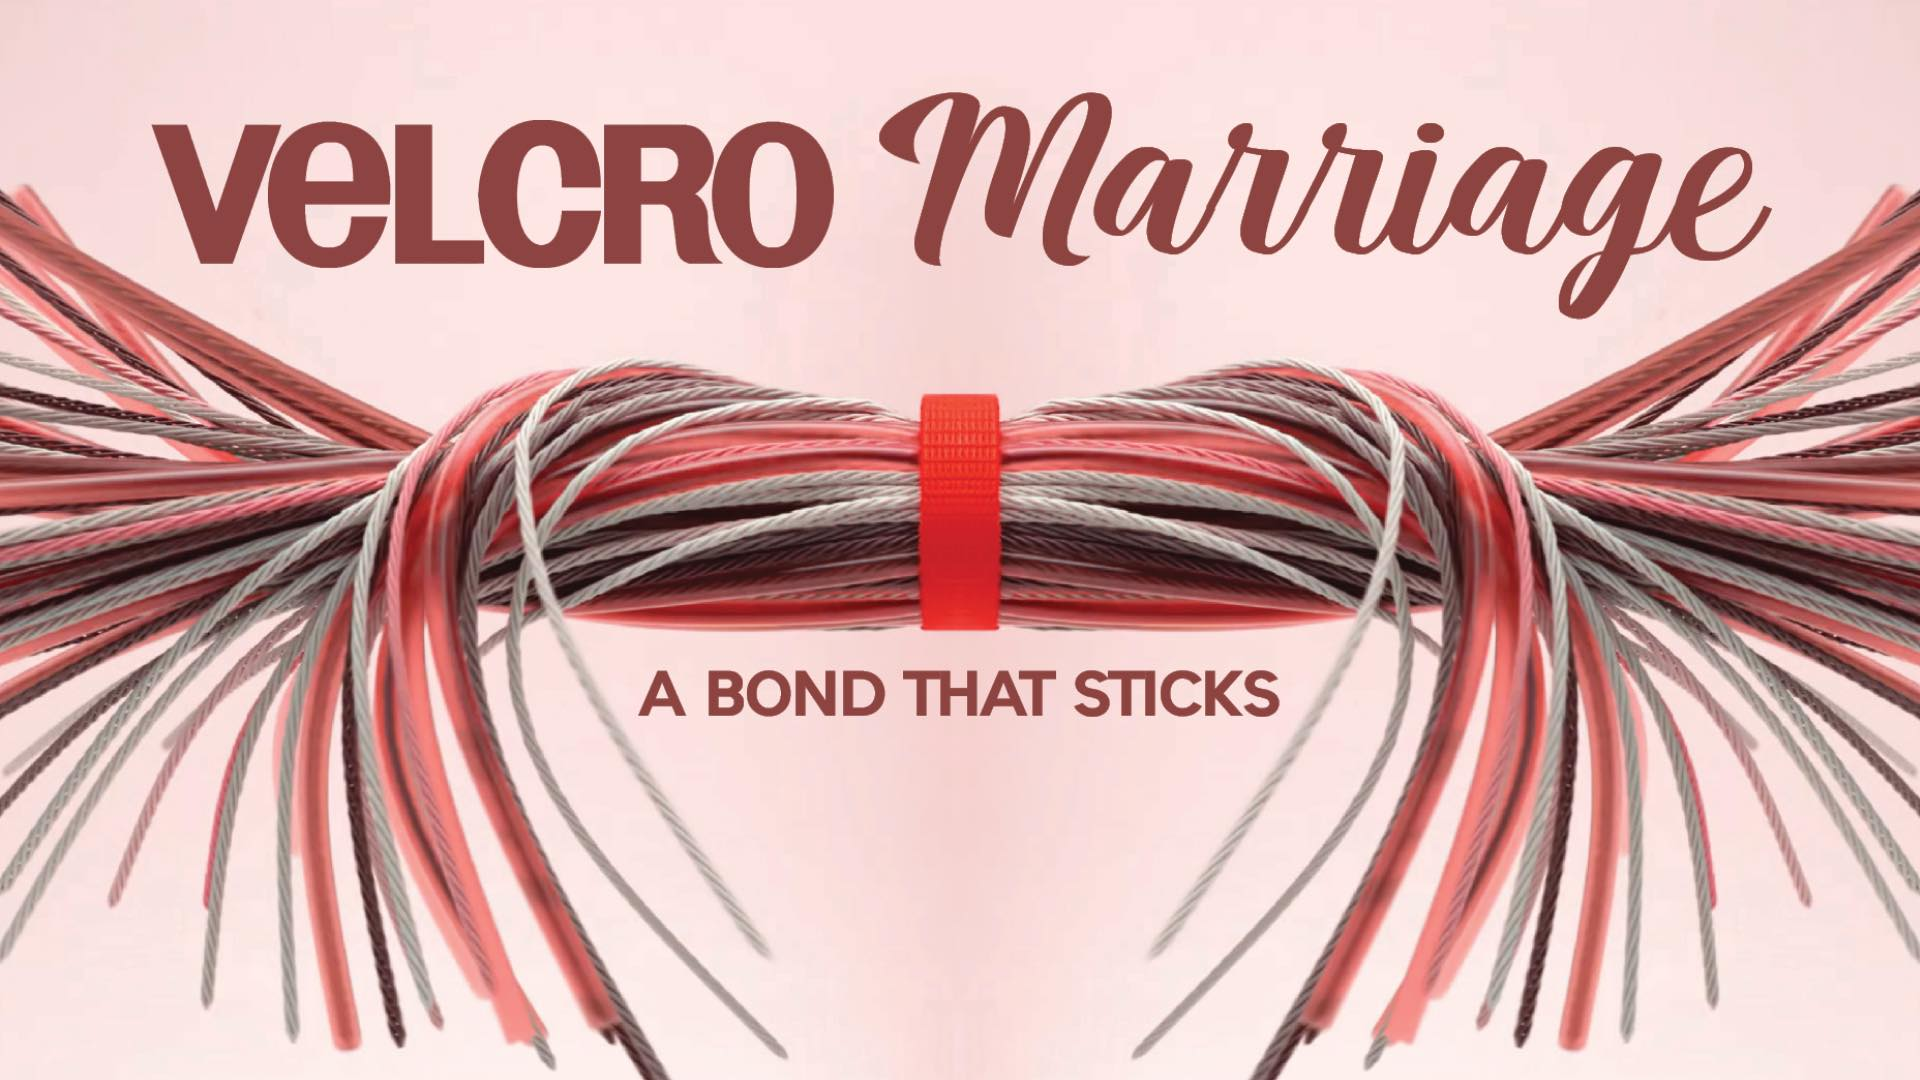 Velcro Marriage - Click HERE to watch this series.